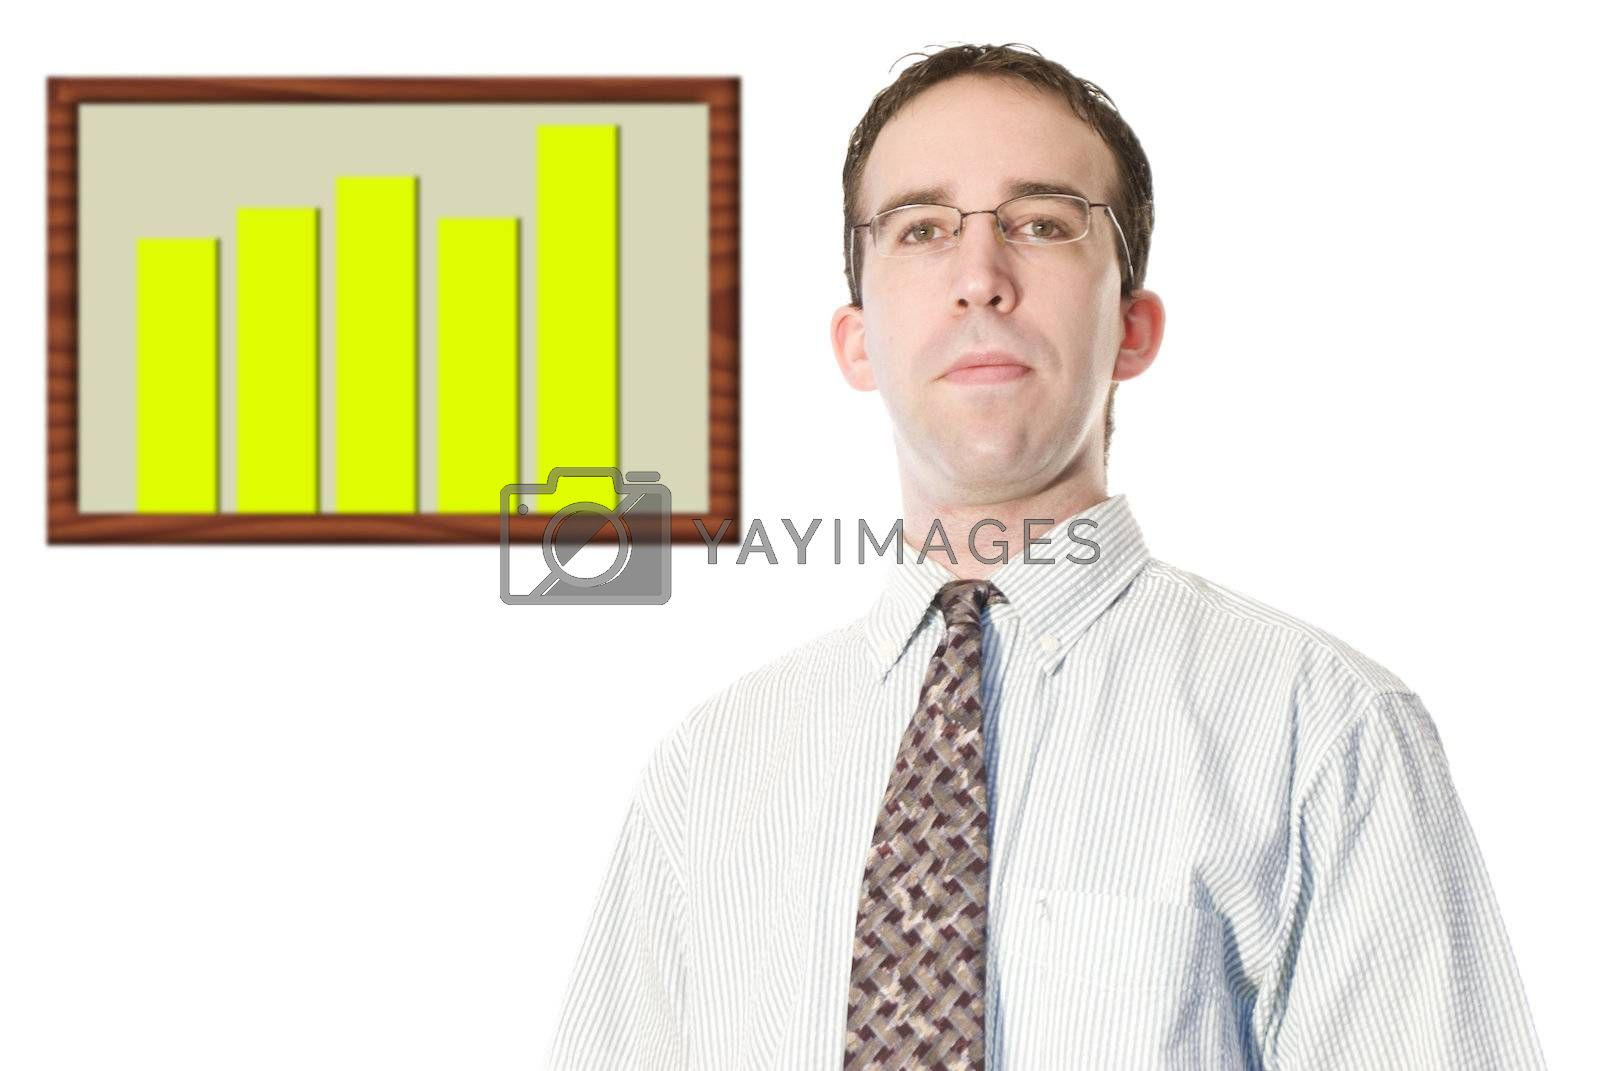 A young businessman wearing a dress shirt and tie, standing beside a graph to represent financial growth.